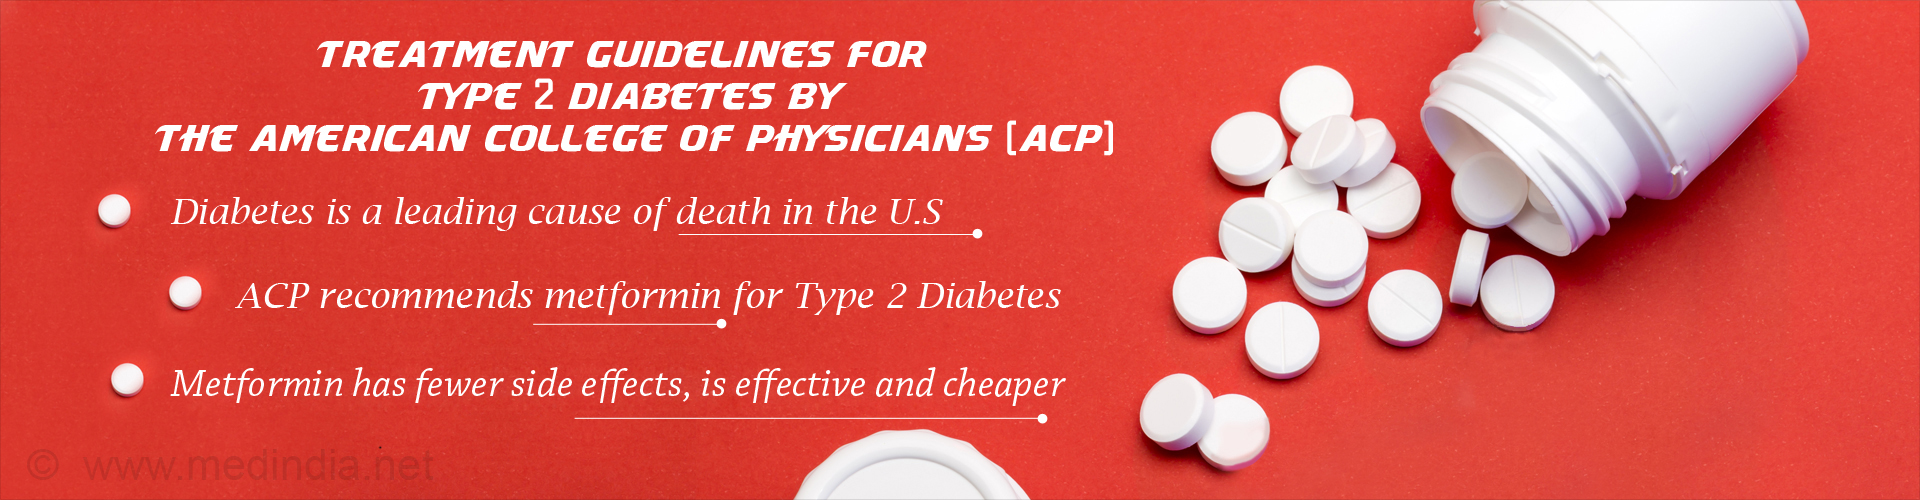 Updated Treatment Guidelines for Type 2 Diabetes